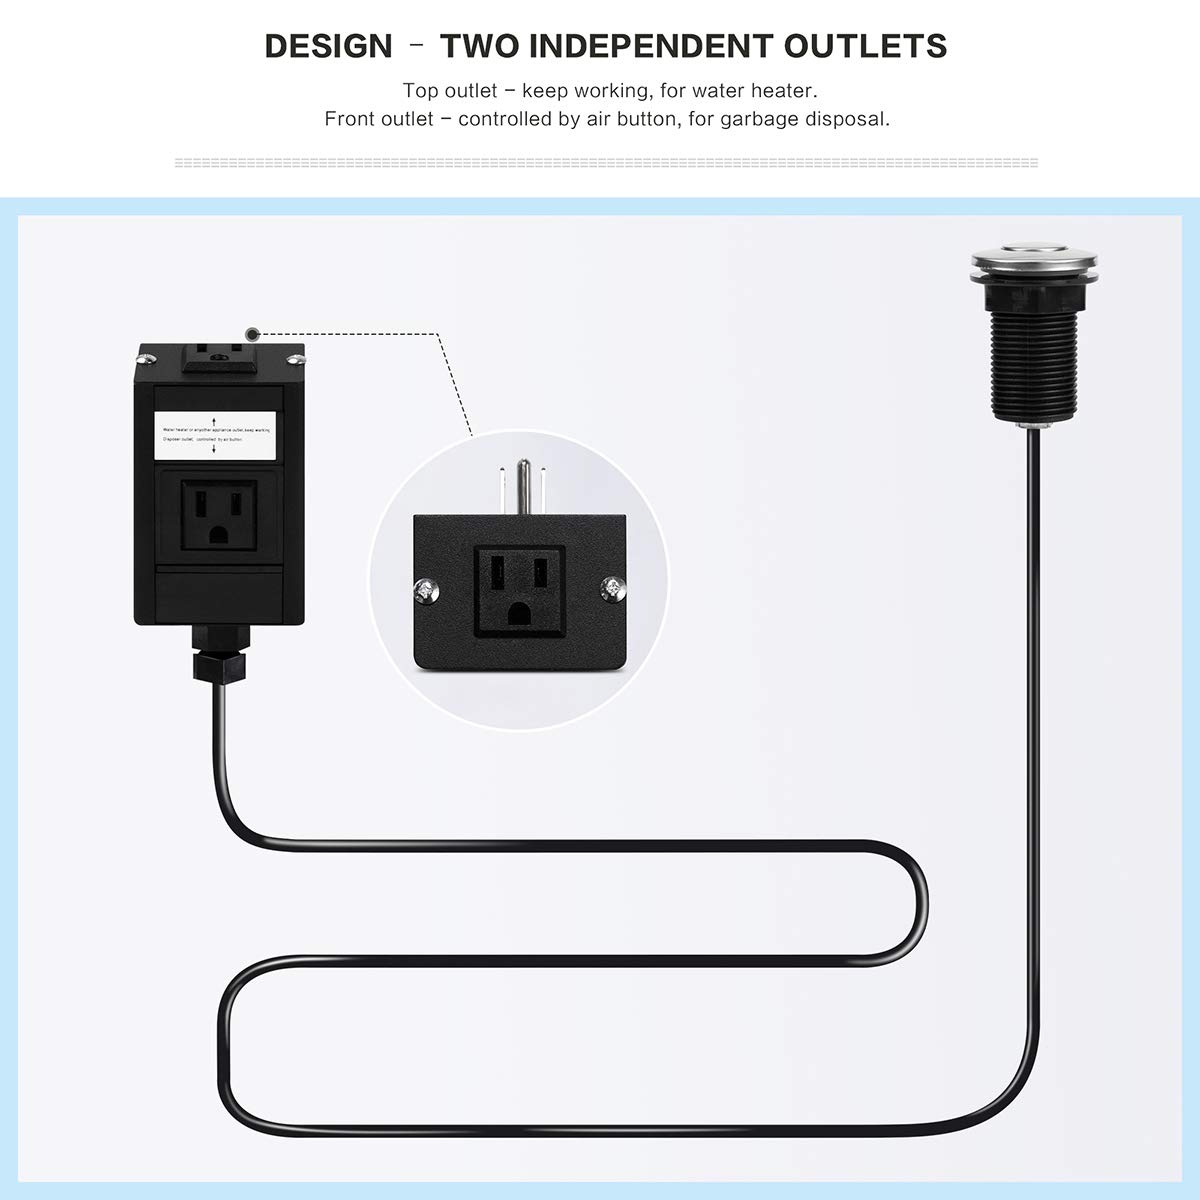 Sink Top Air Switch Kit Dual Outlet Turn On//Off Counter Top Air Switch Kit for Garbage Disposals with LONG POLISHED BUTTON